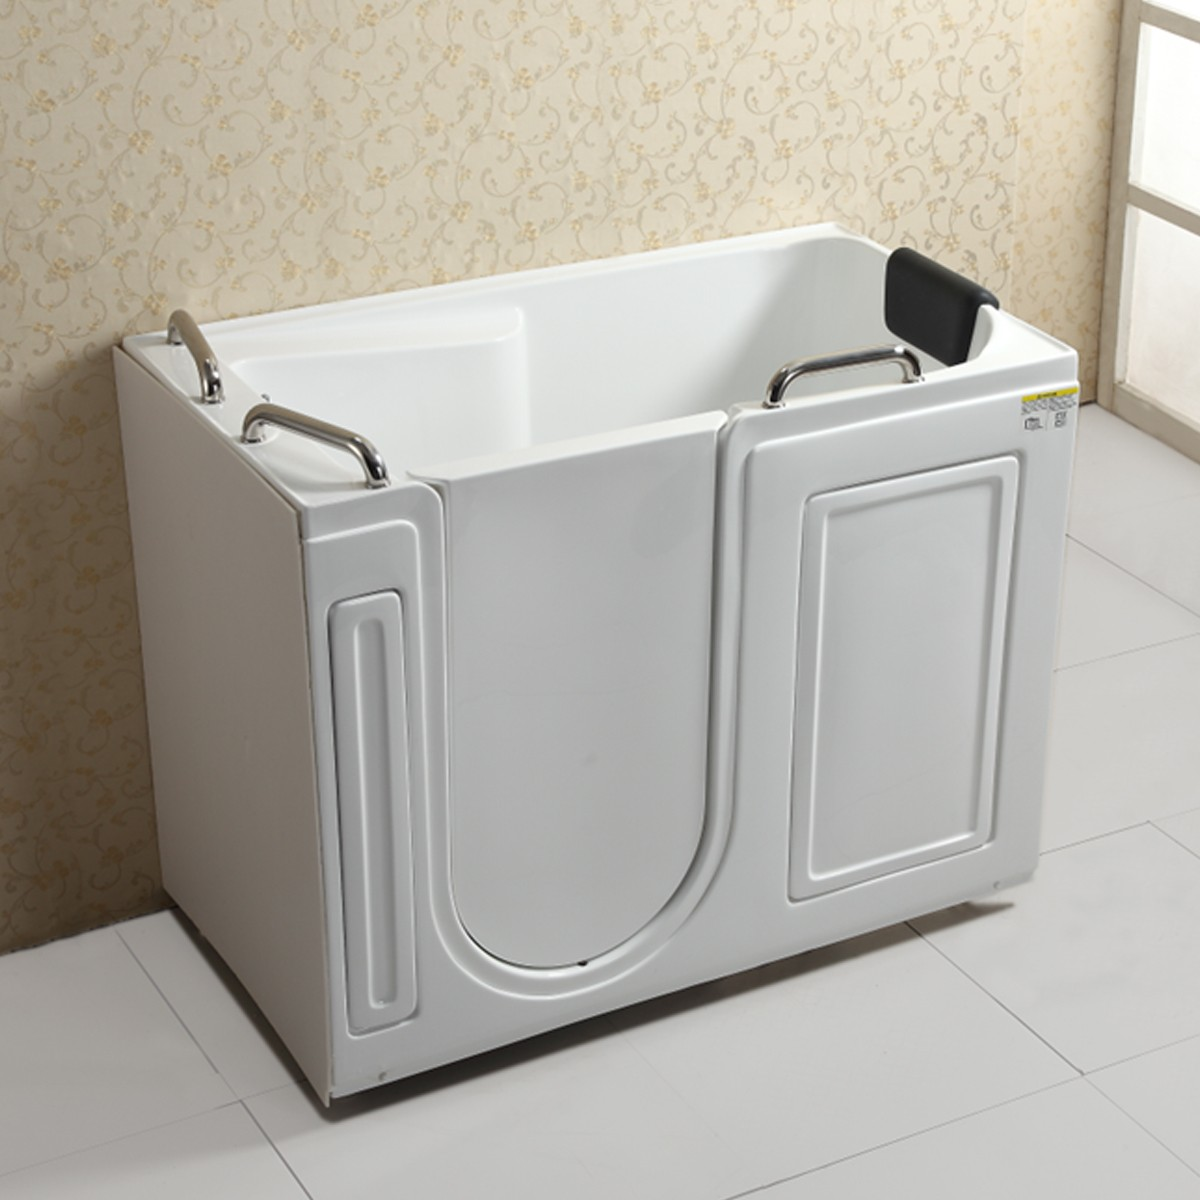 53 x 29 In Walk-in Soaking Bathtub - Acrylic White with Left Drain (DK-Q371-L)